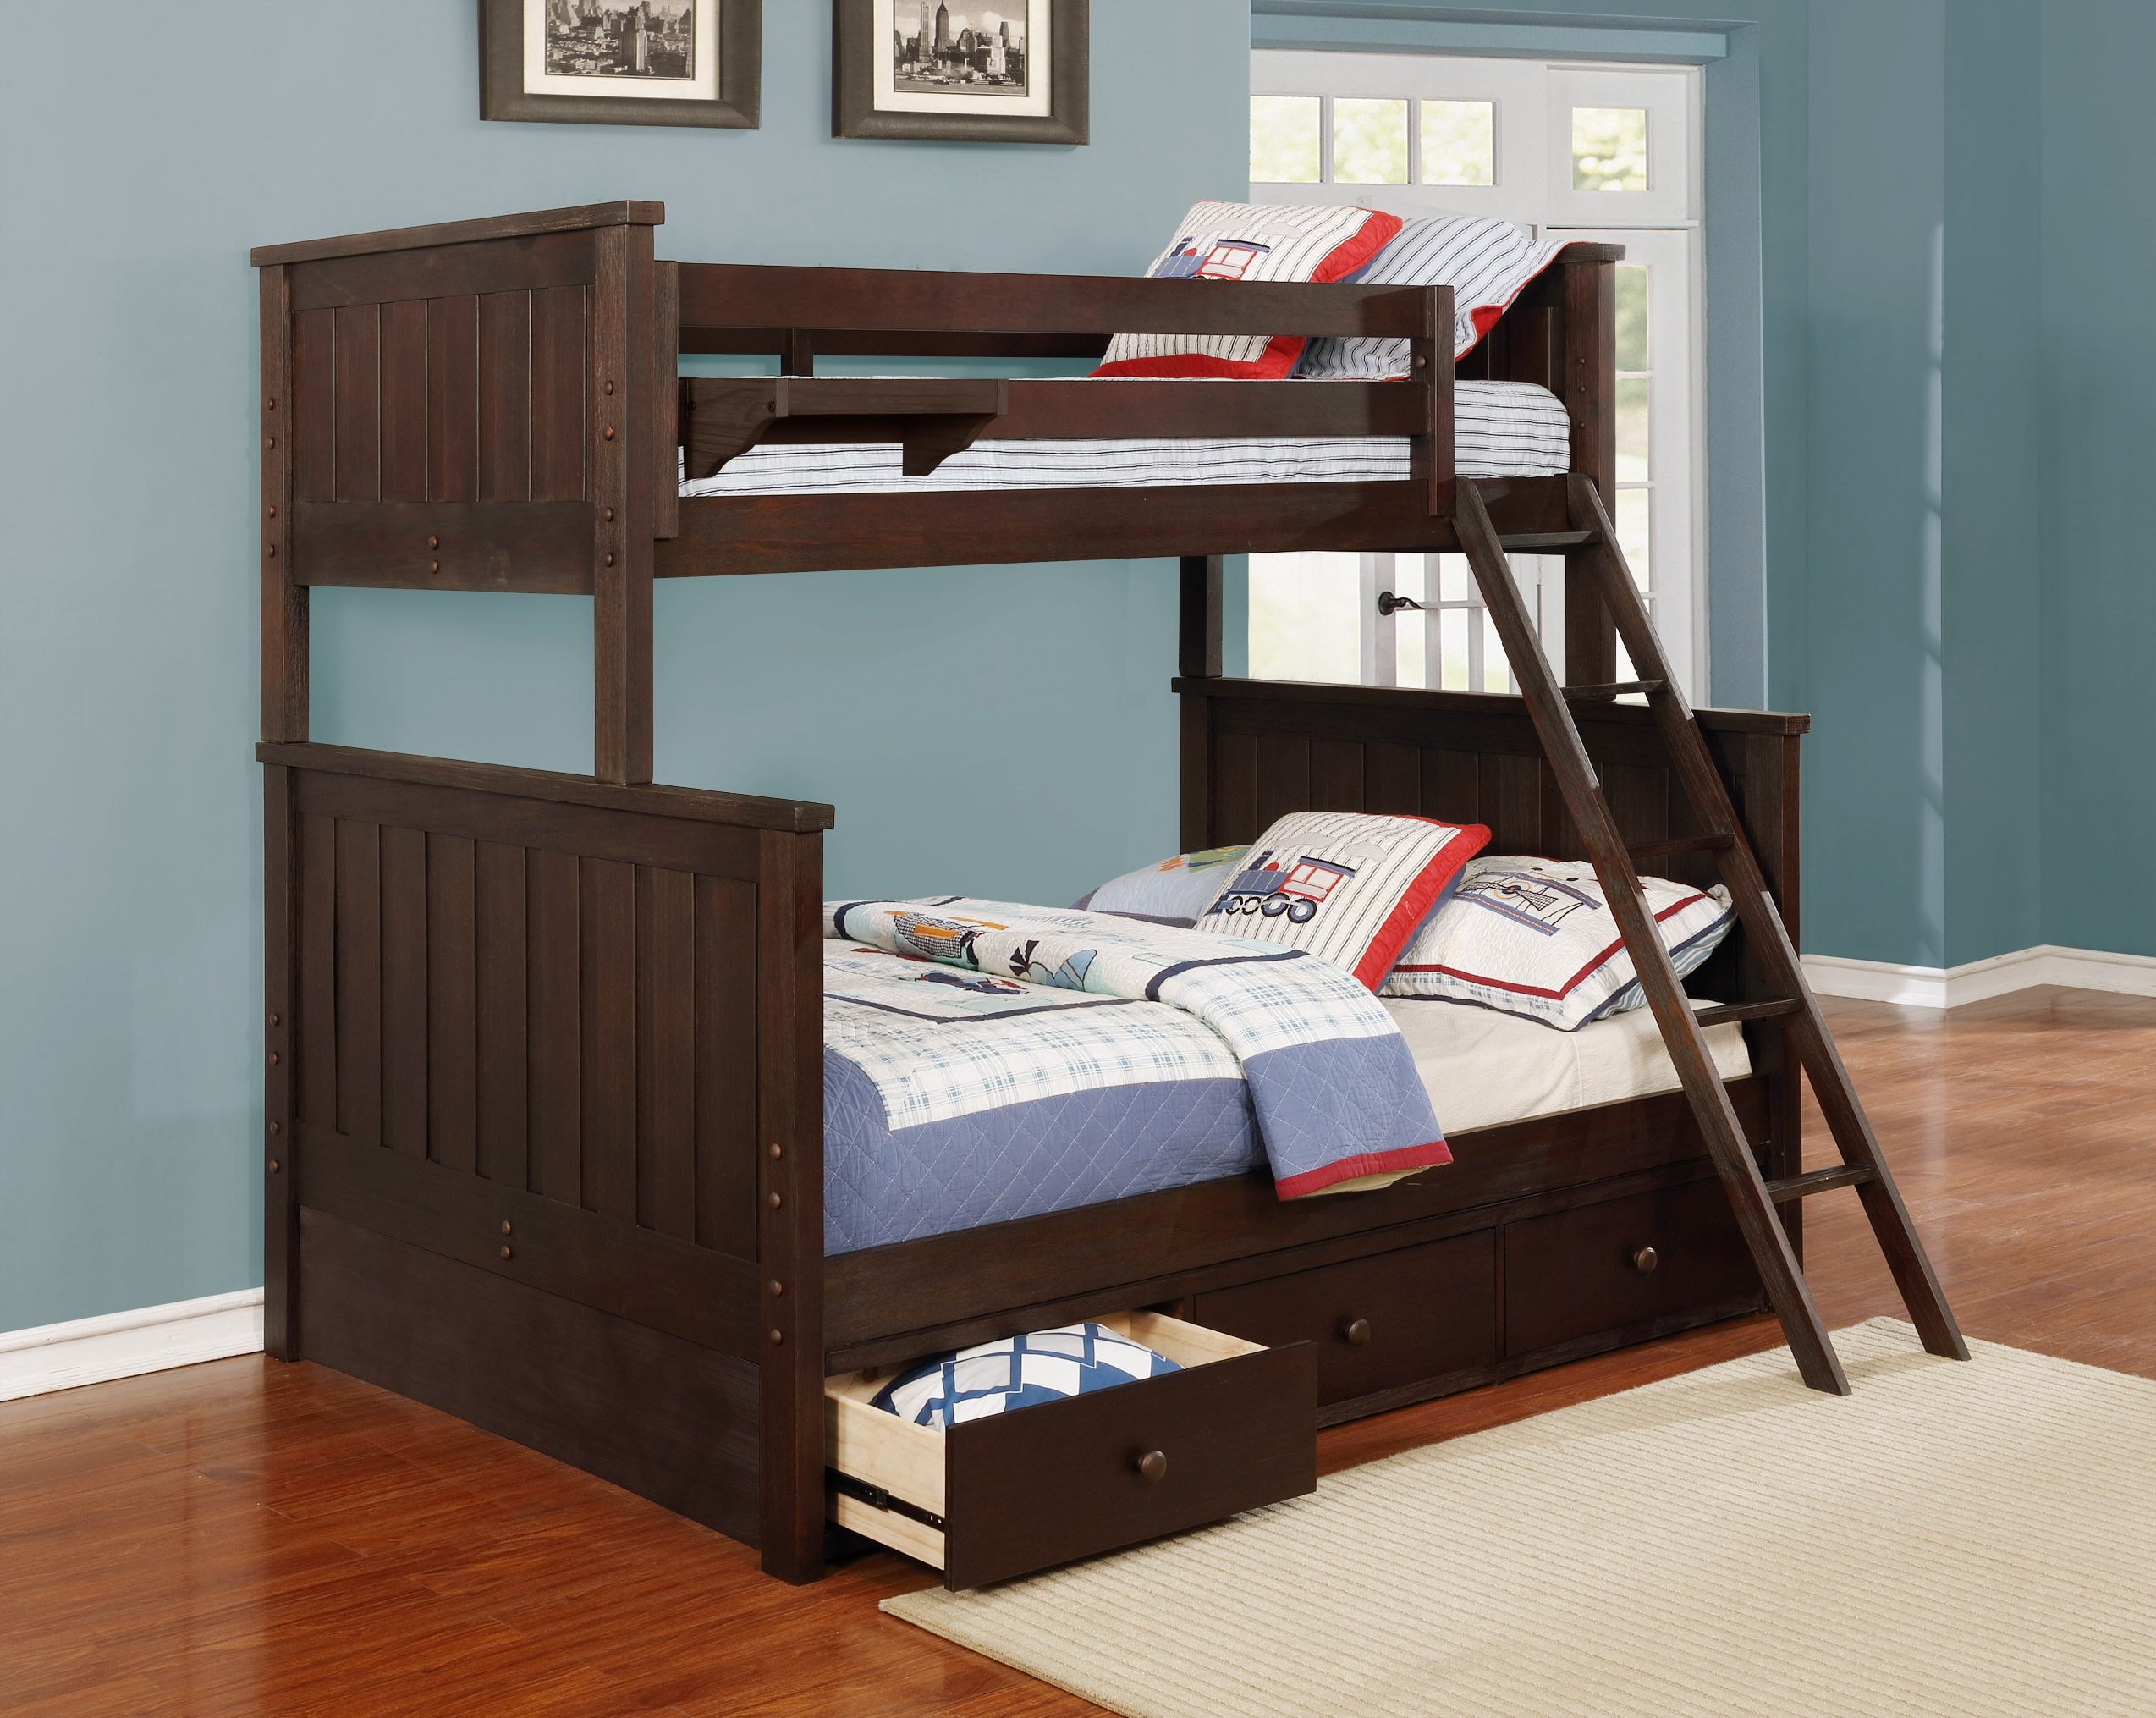 Jordan Twin over Full Bunk Bed with Waterford 3 Drawer Storage Weathered Espresso